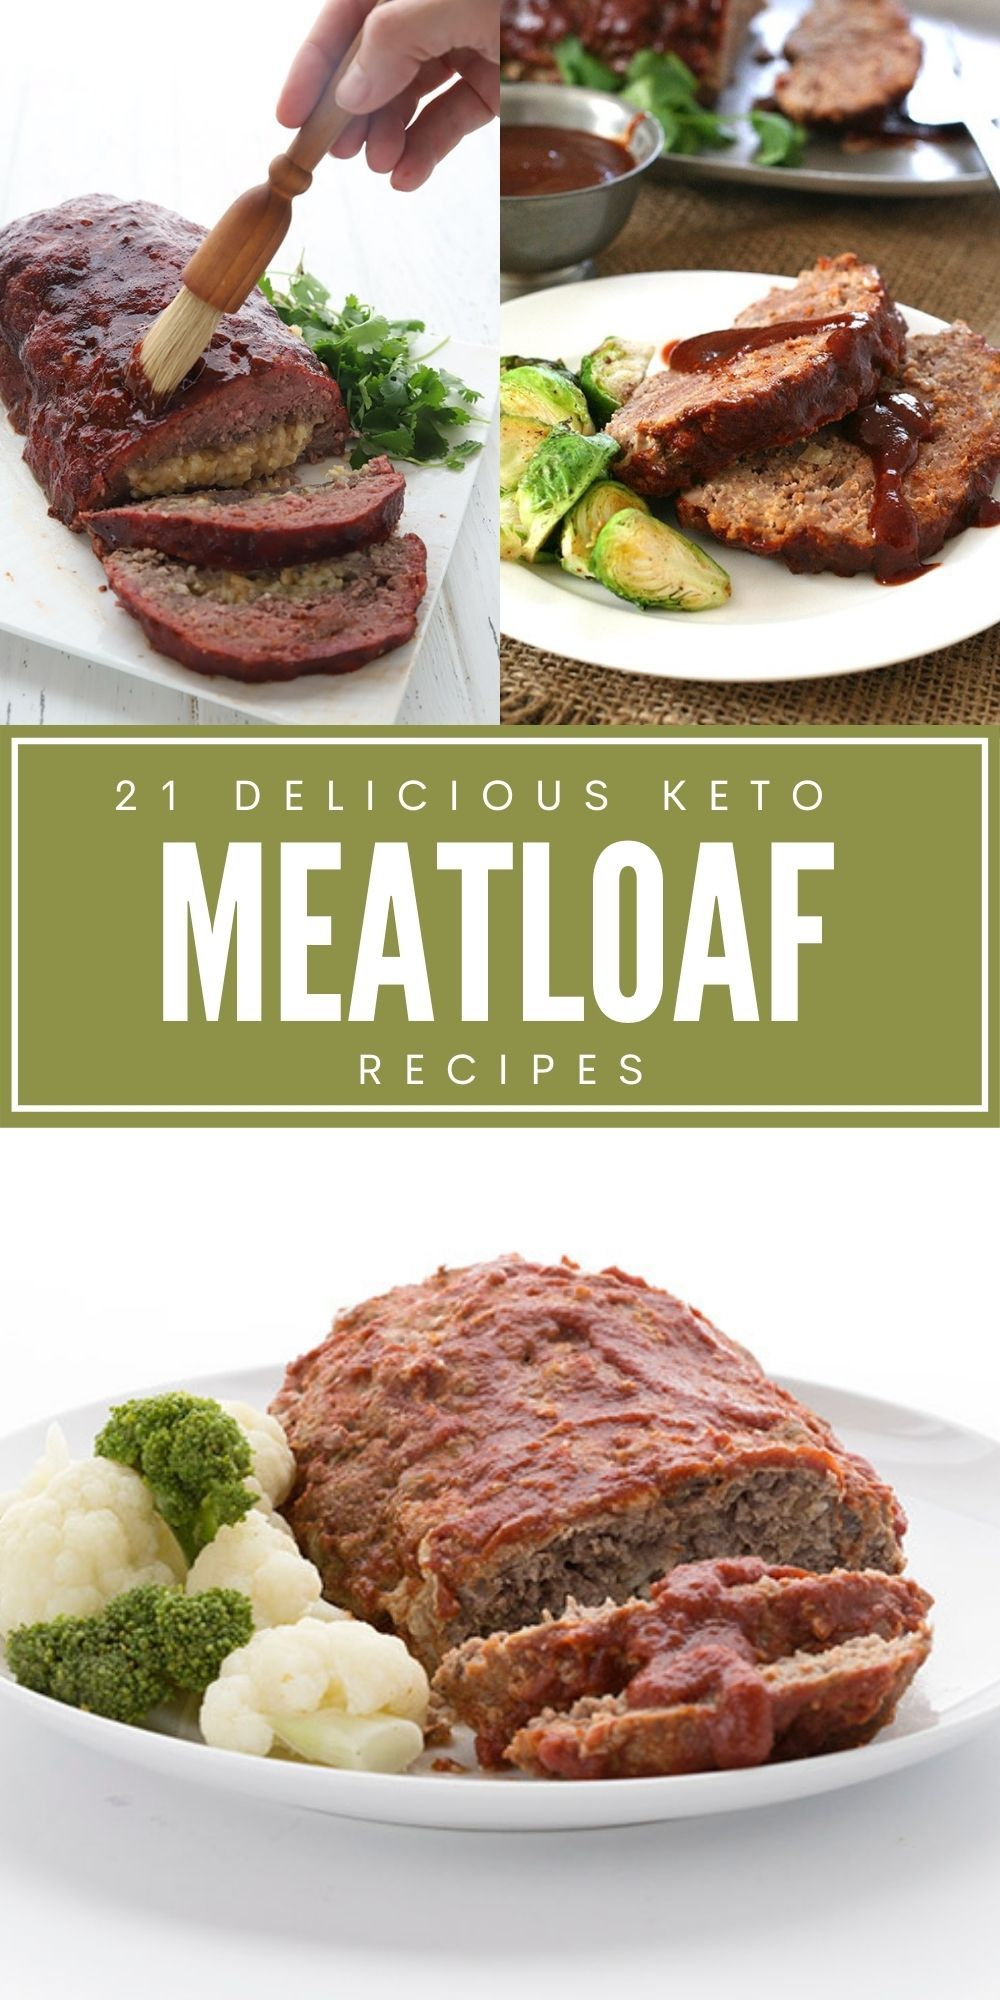 The Best Keto Meatloaf Recipes Healthy Breakfast Recipes Good Healthy Recipes Low Carb Meatloaf Recipe